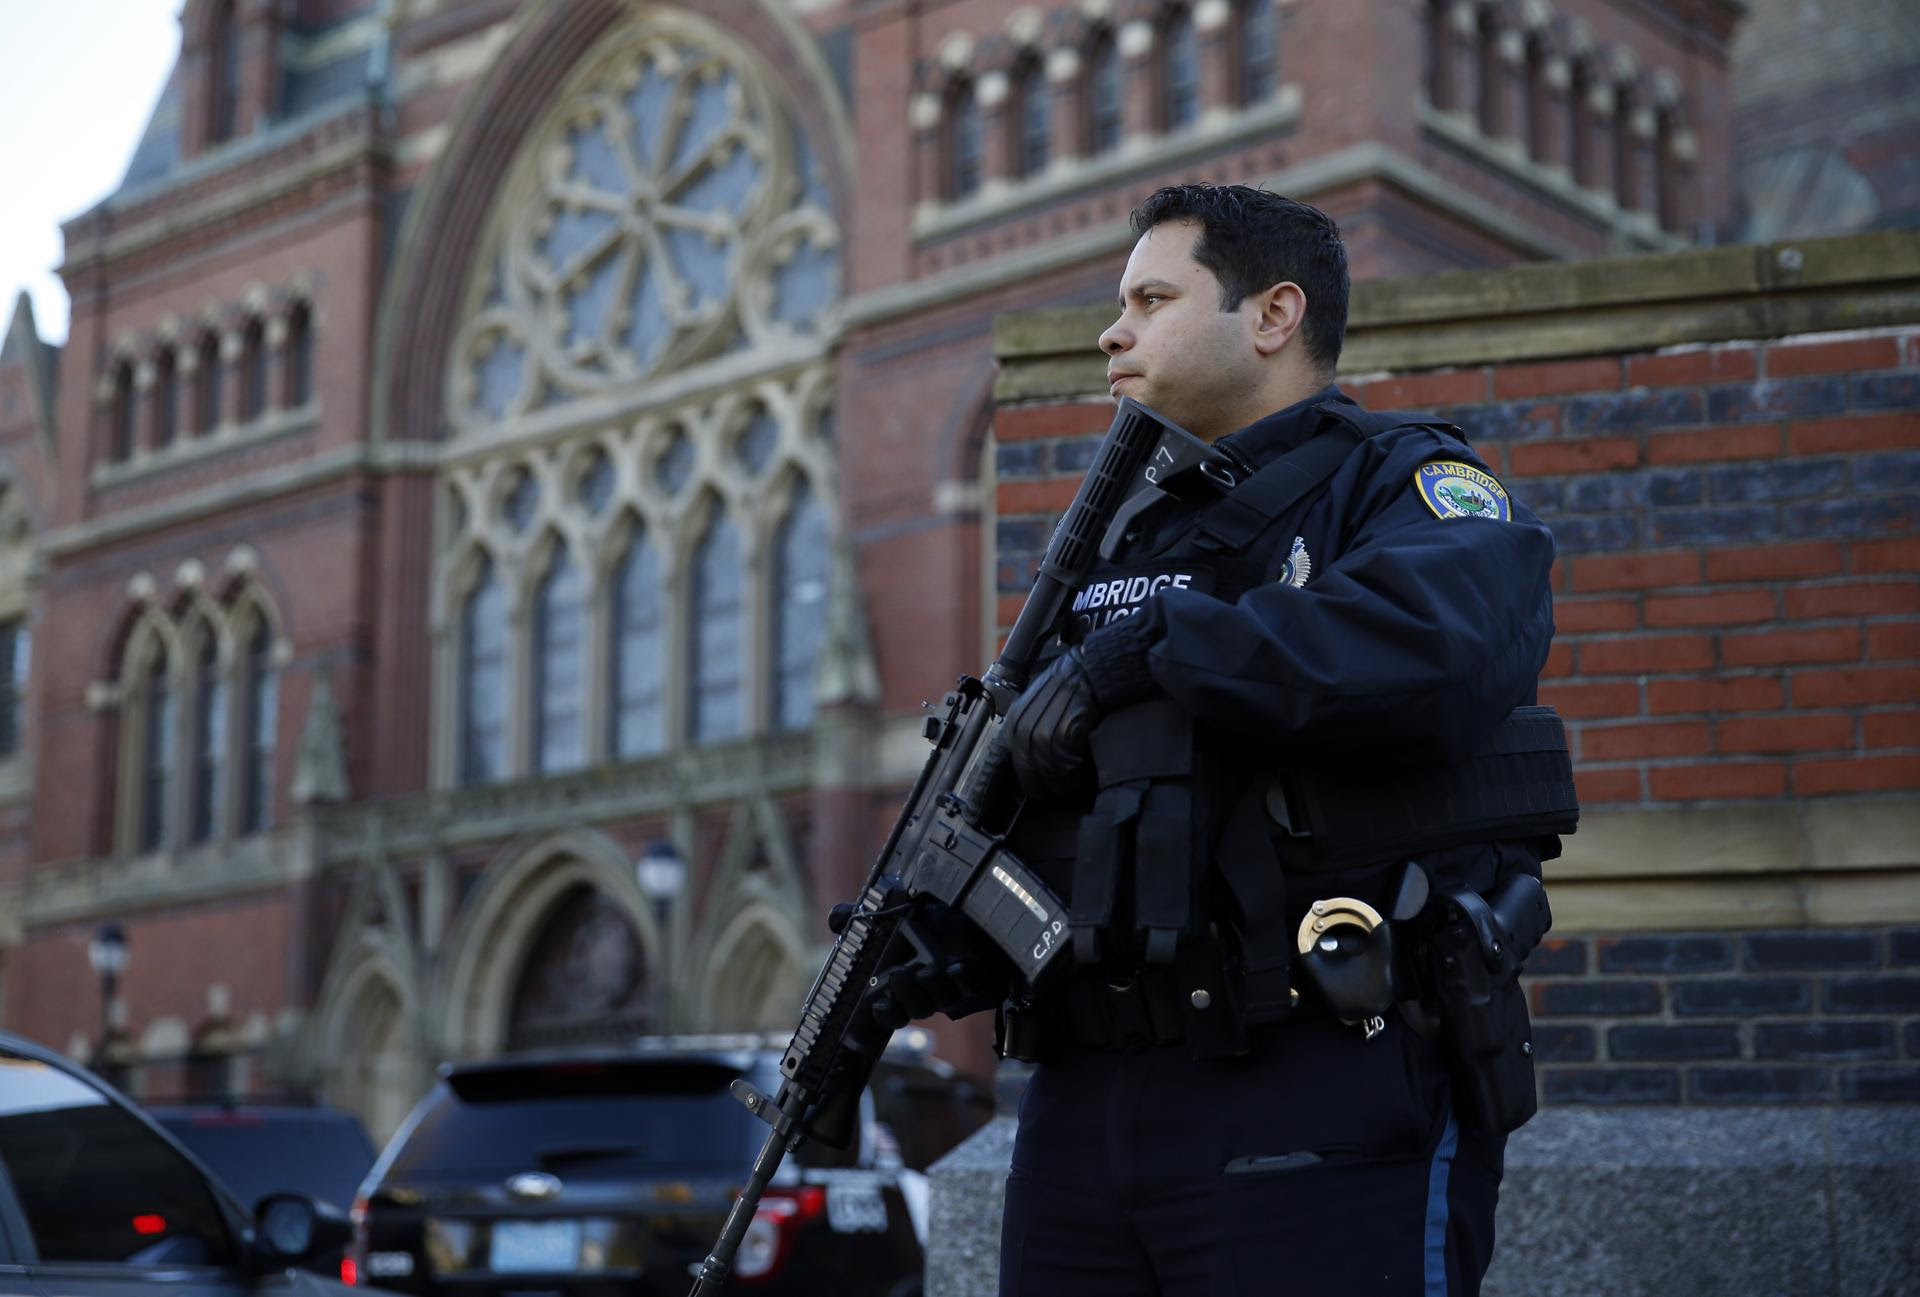 A Cambridge police officer kept watch outside of Harvard's Memorial Hall on Monday.